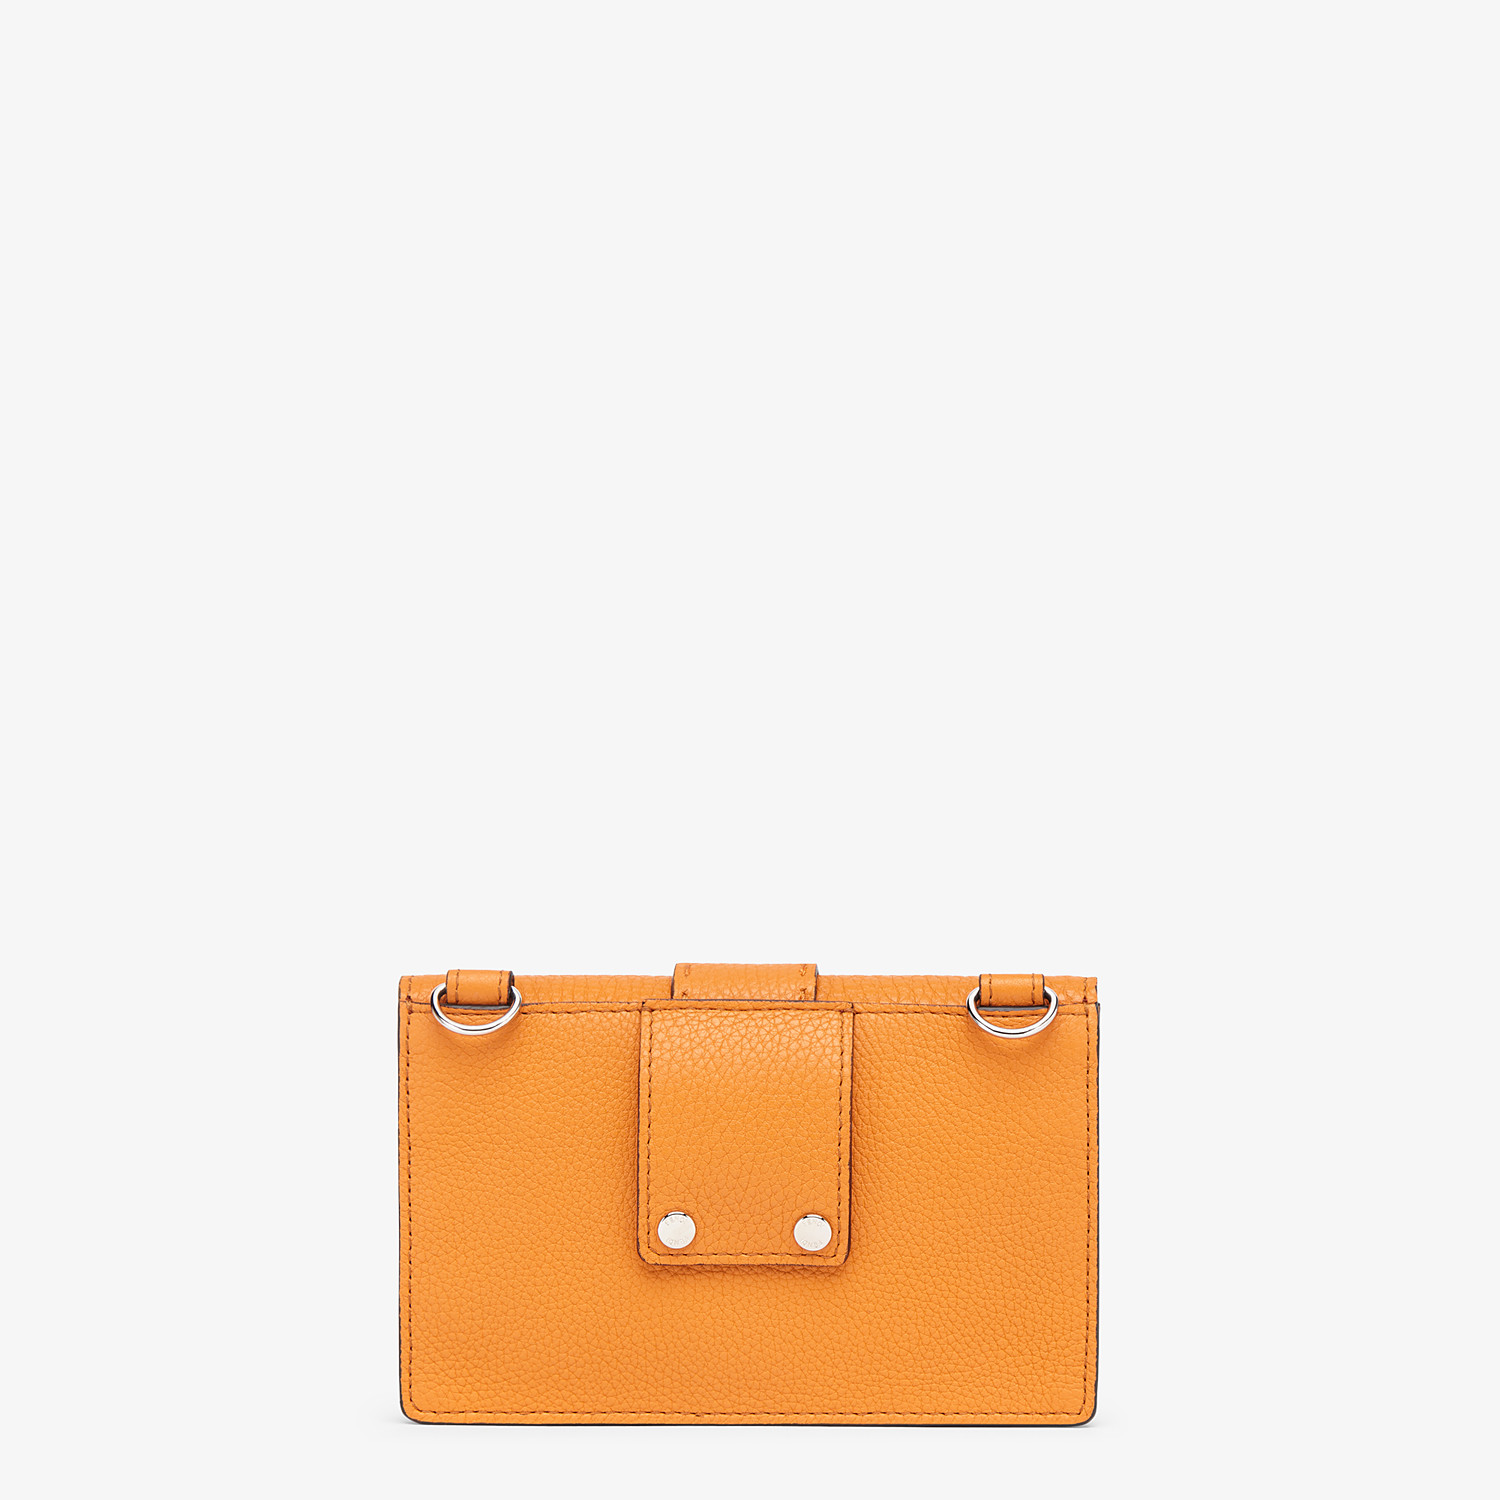 FENDI BAGUETTE POUCH - Orange leather bag - view 3 detail